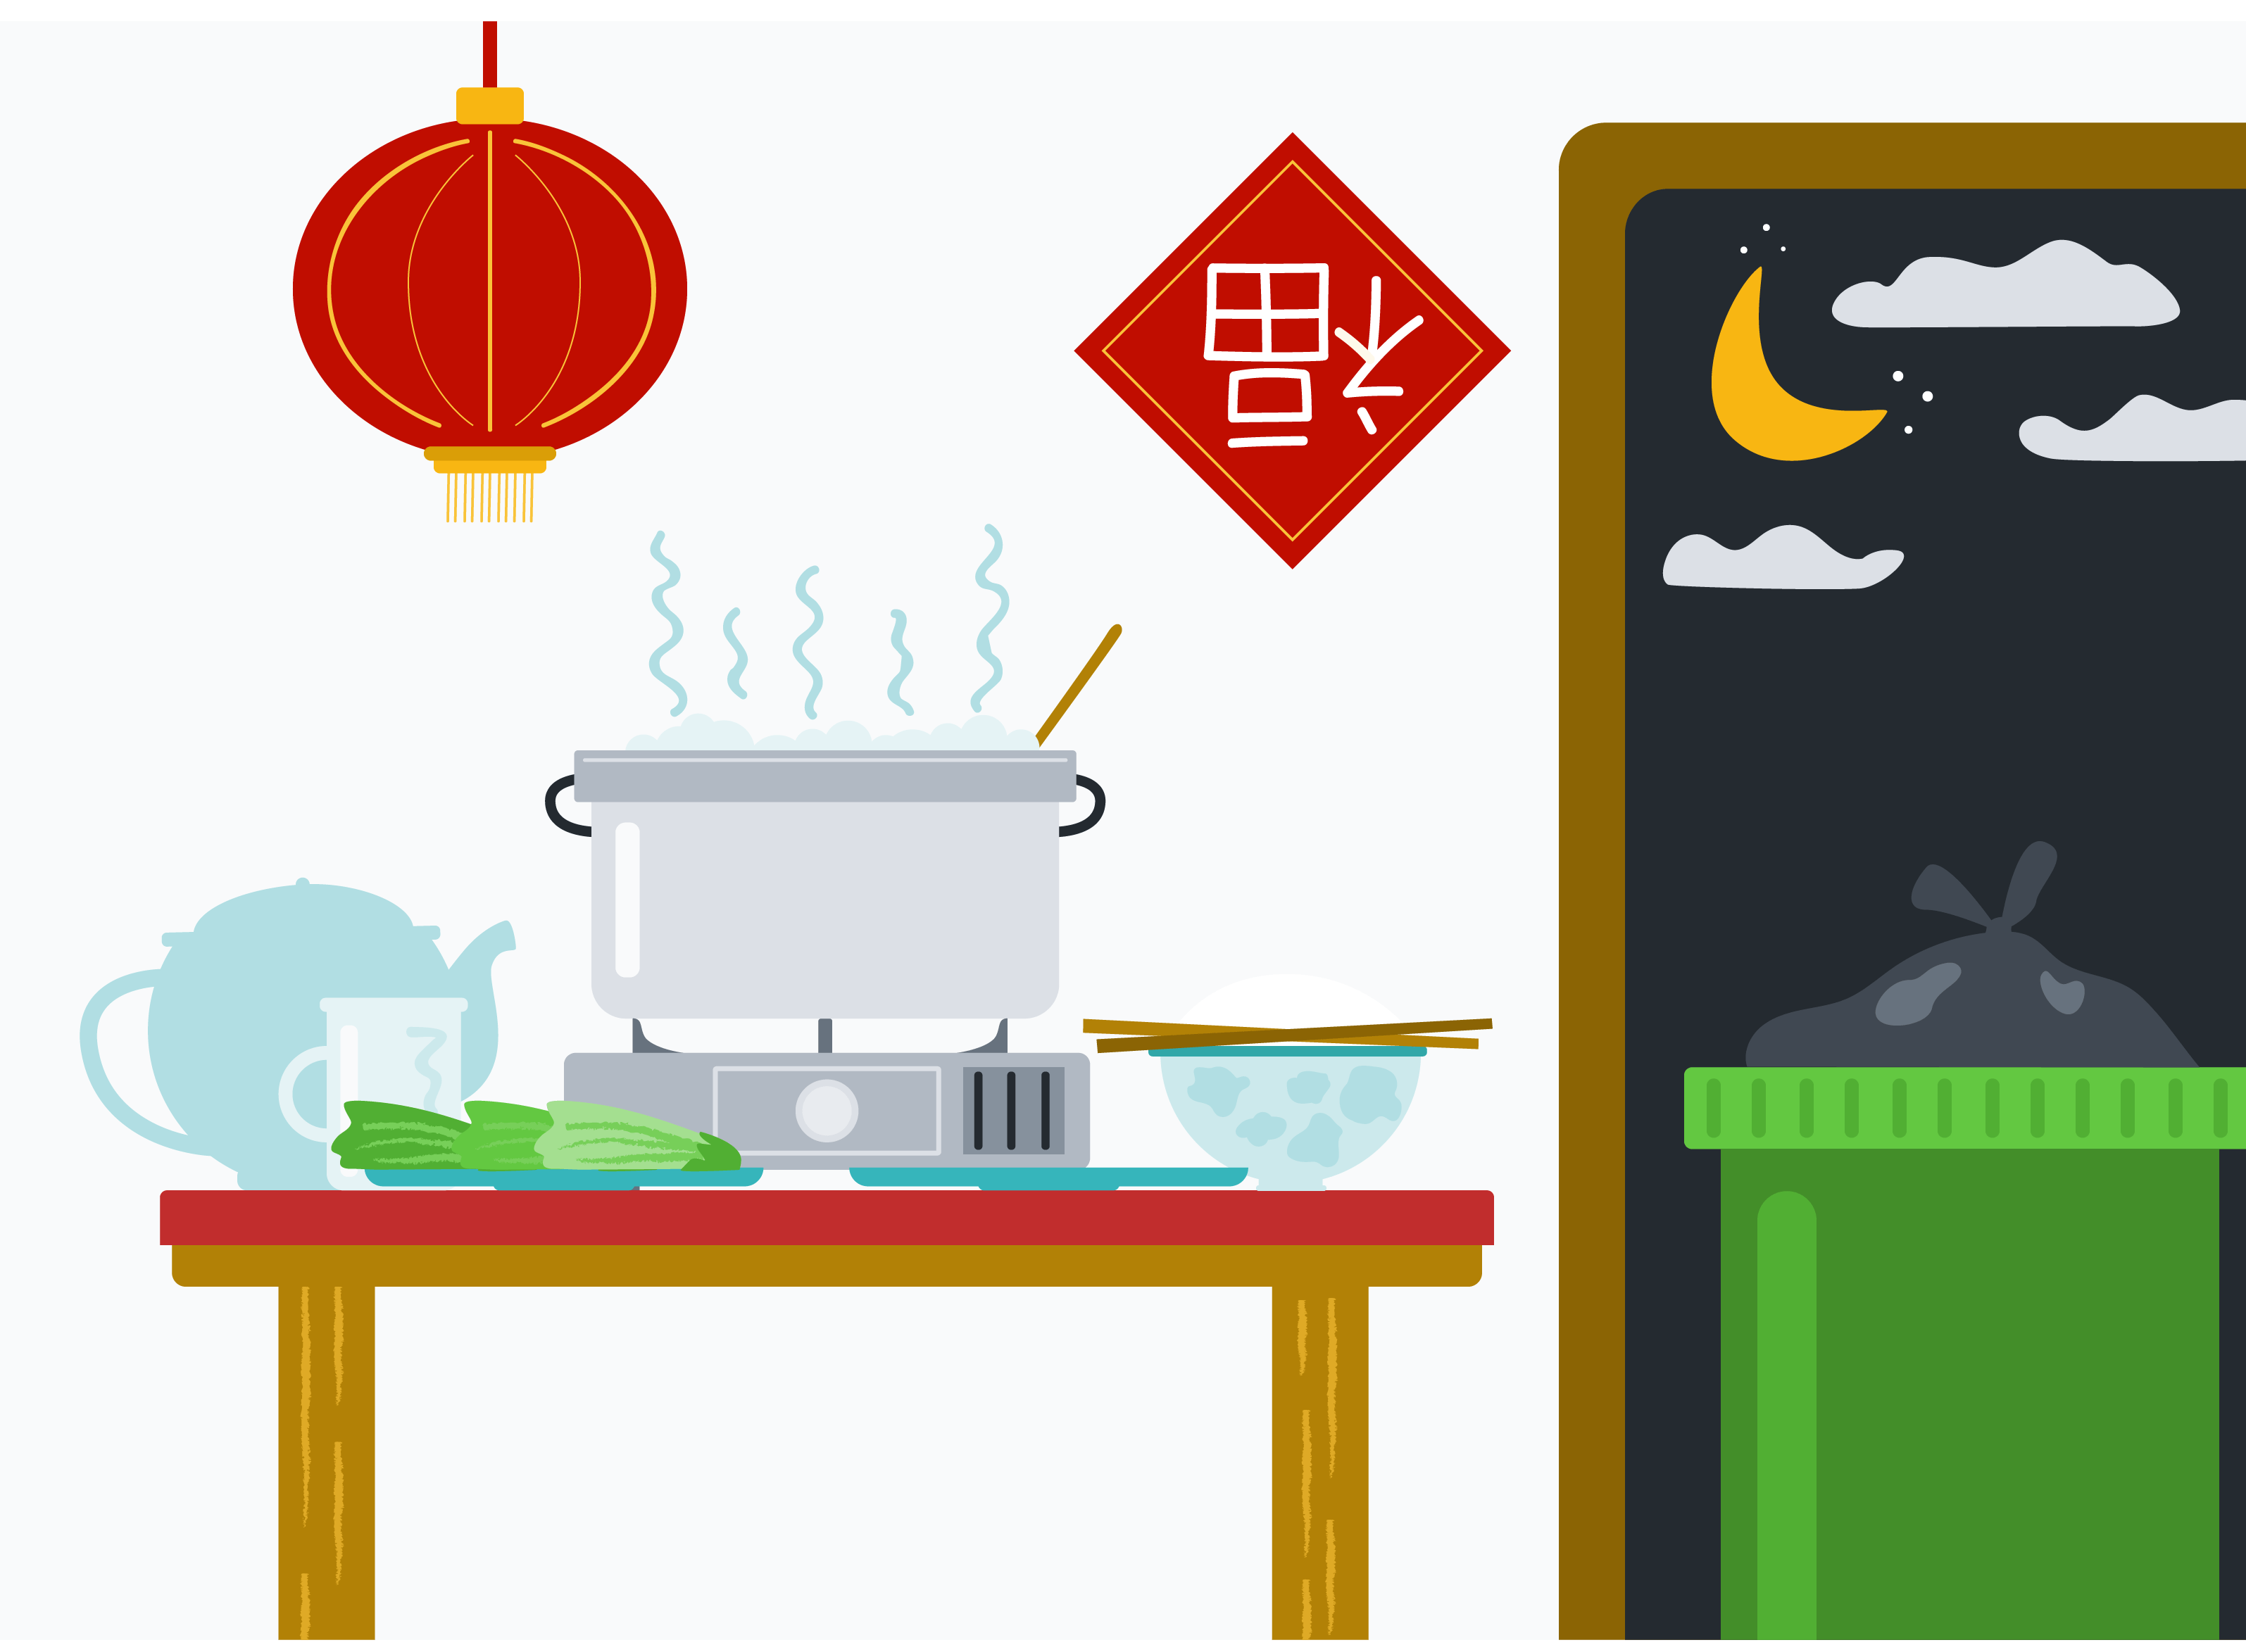 Lunar-New-Year@4x.png